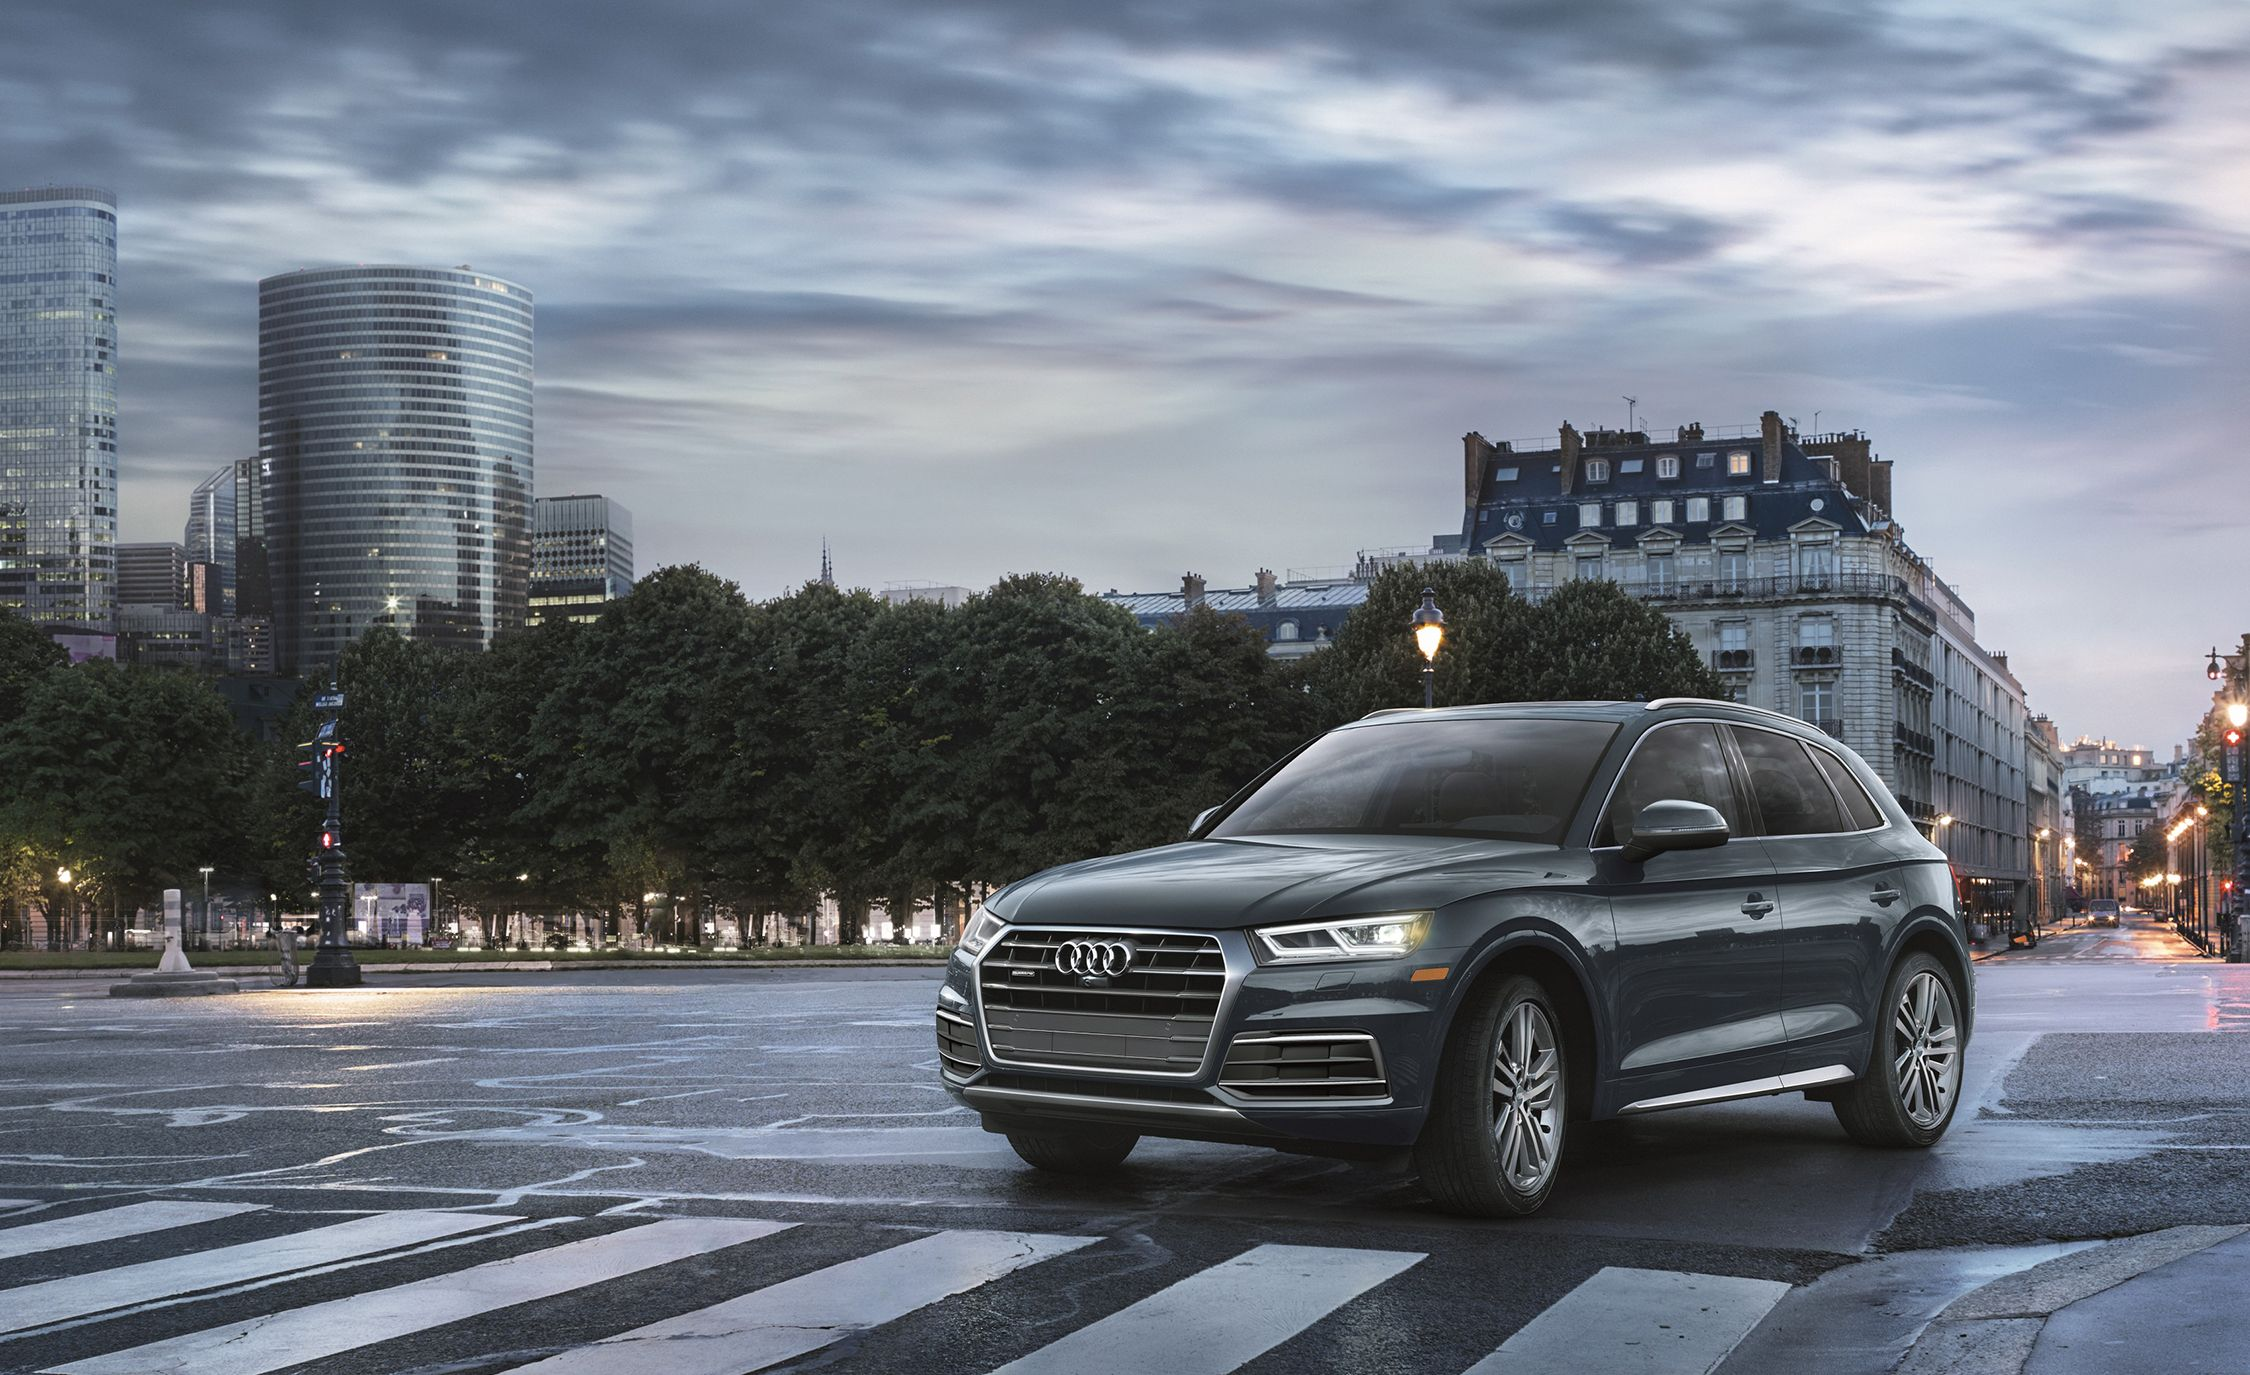 Audi S Subscription Service Lets You Access Five Models For 1395 Per Month